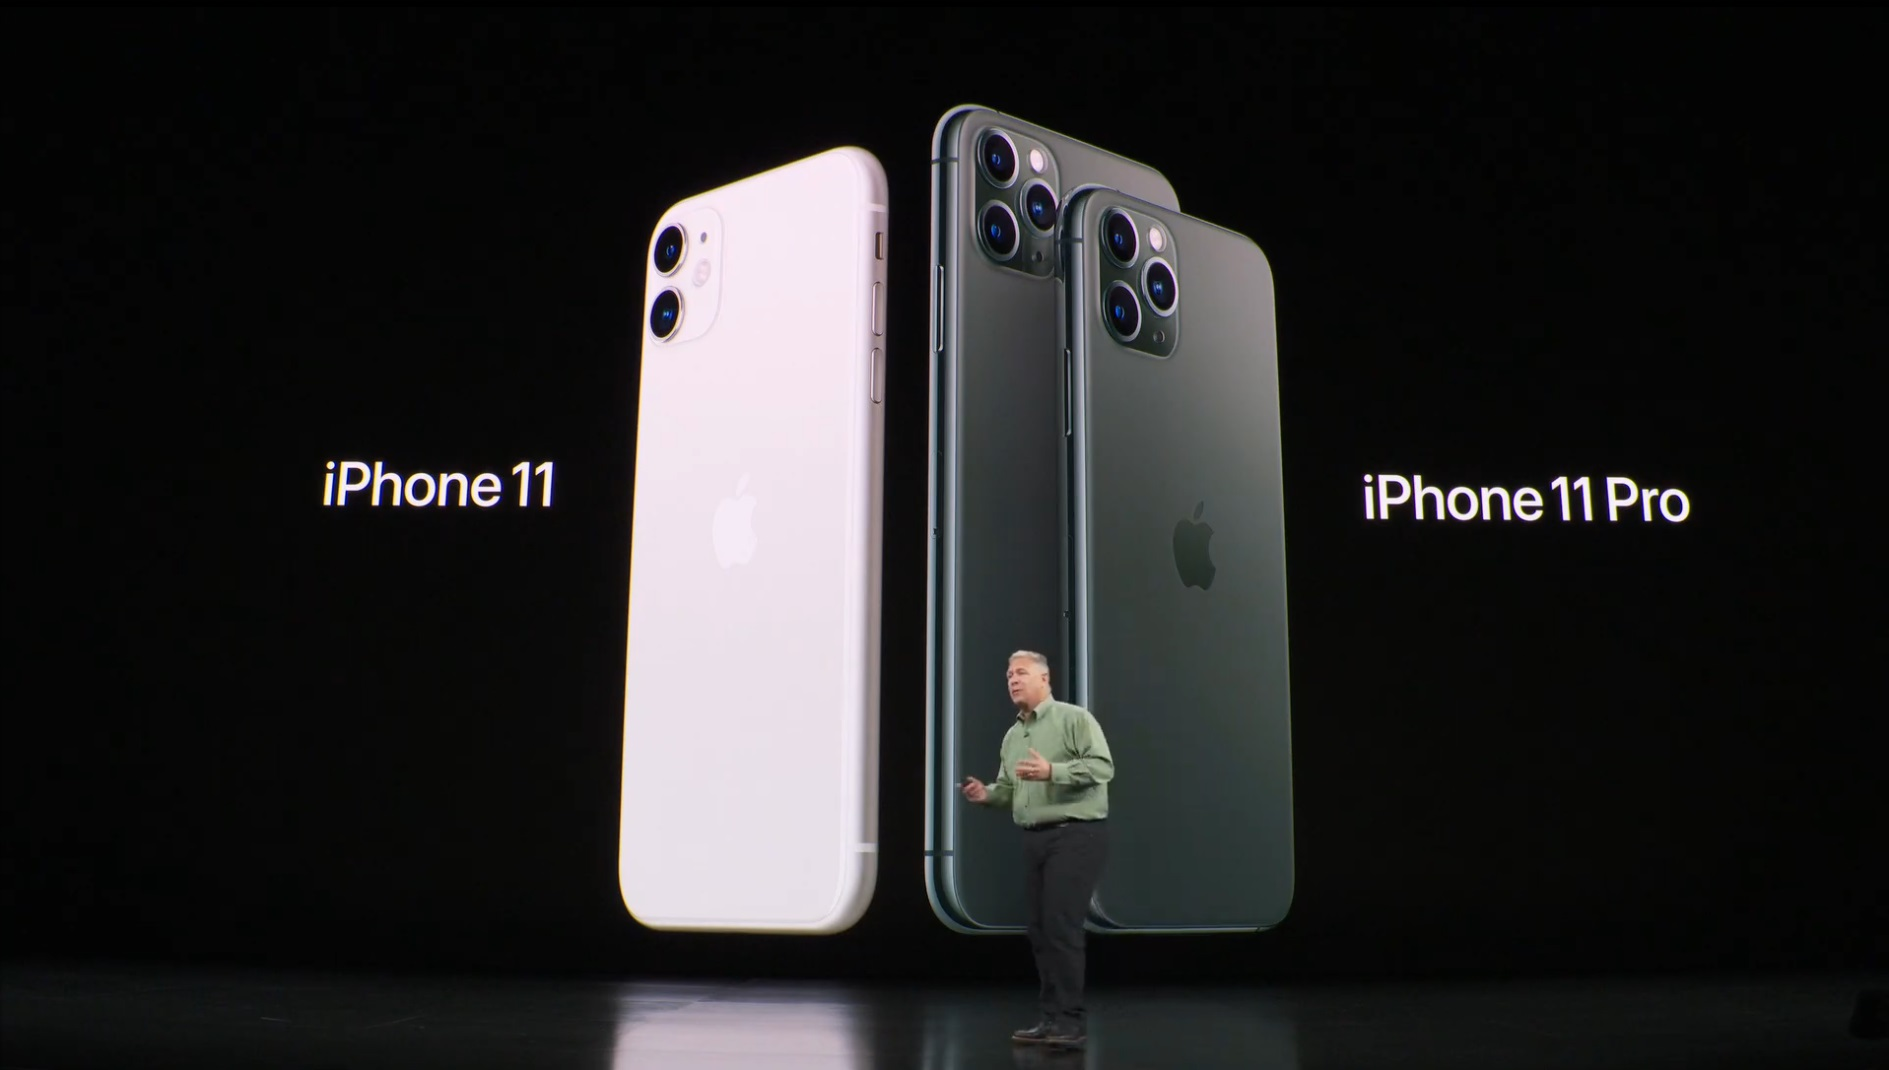 Apple Iphone 11 Pro Announced Featuring Four Cameras All